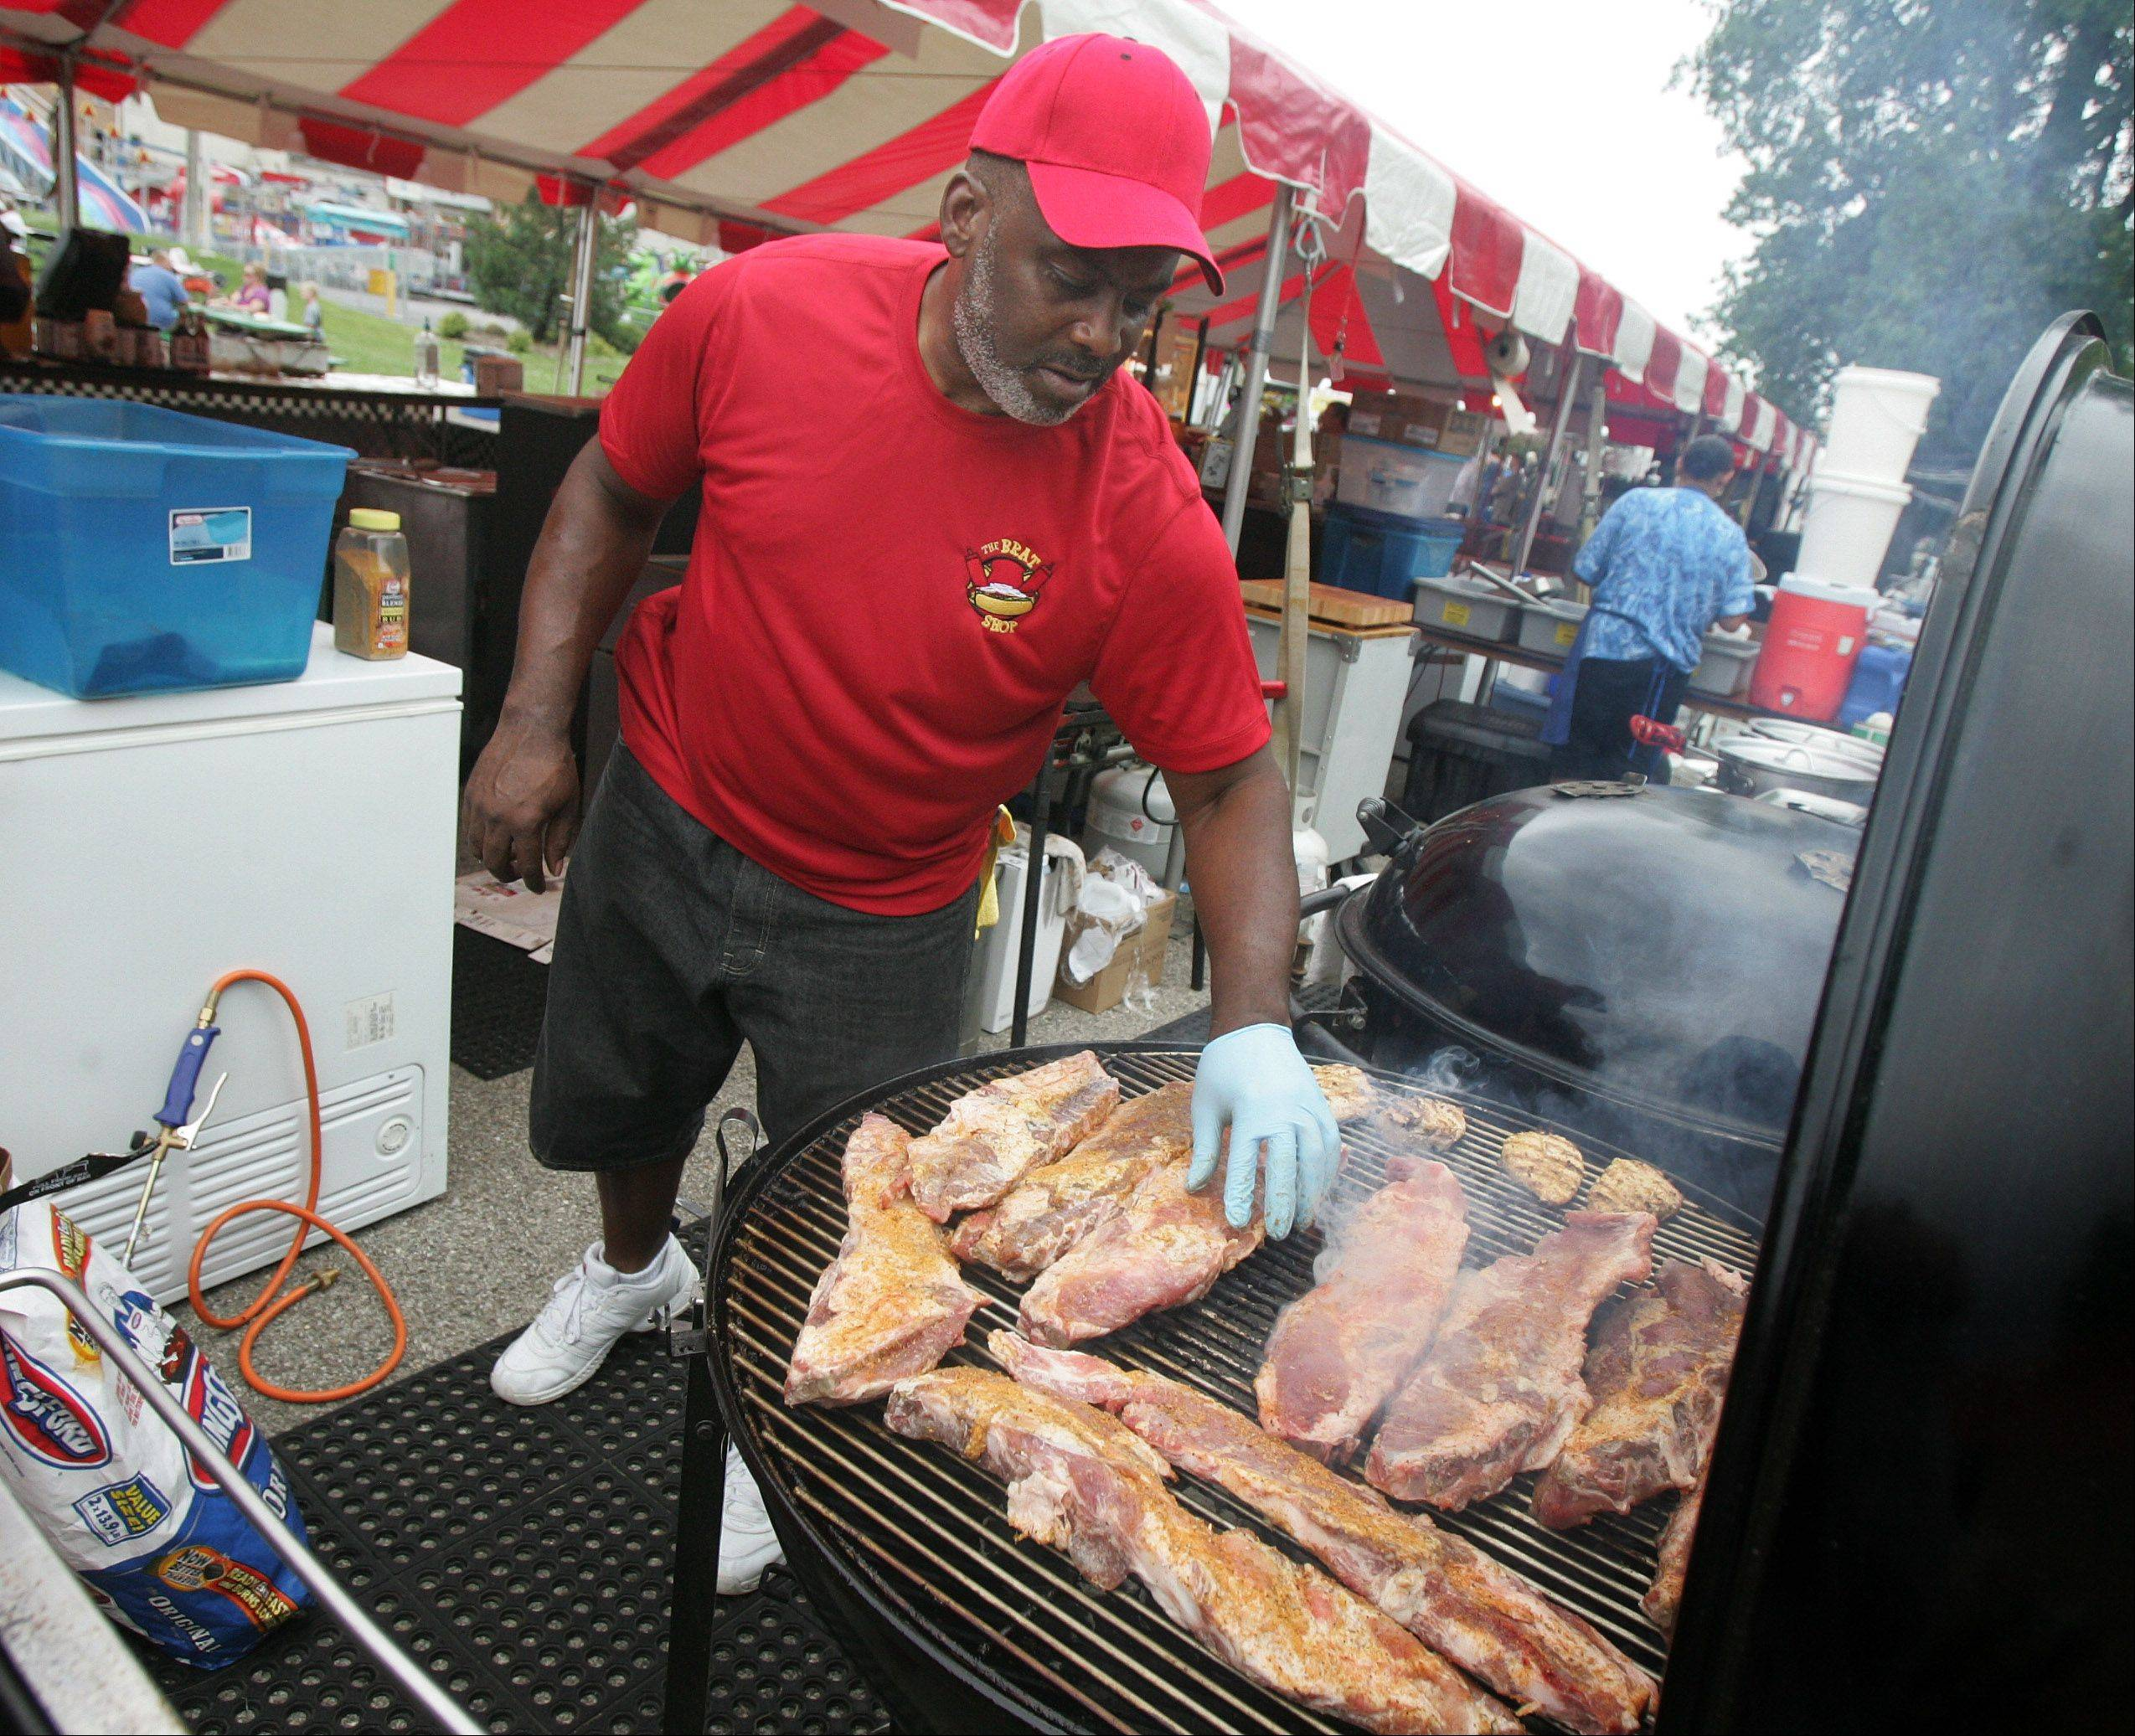 Chris Smith of the Brat Stop puts ribs on the grill during the first day of the Antioch Taste of Summer.